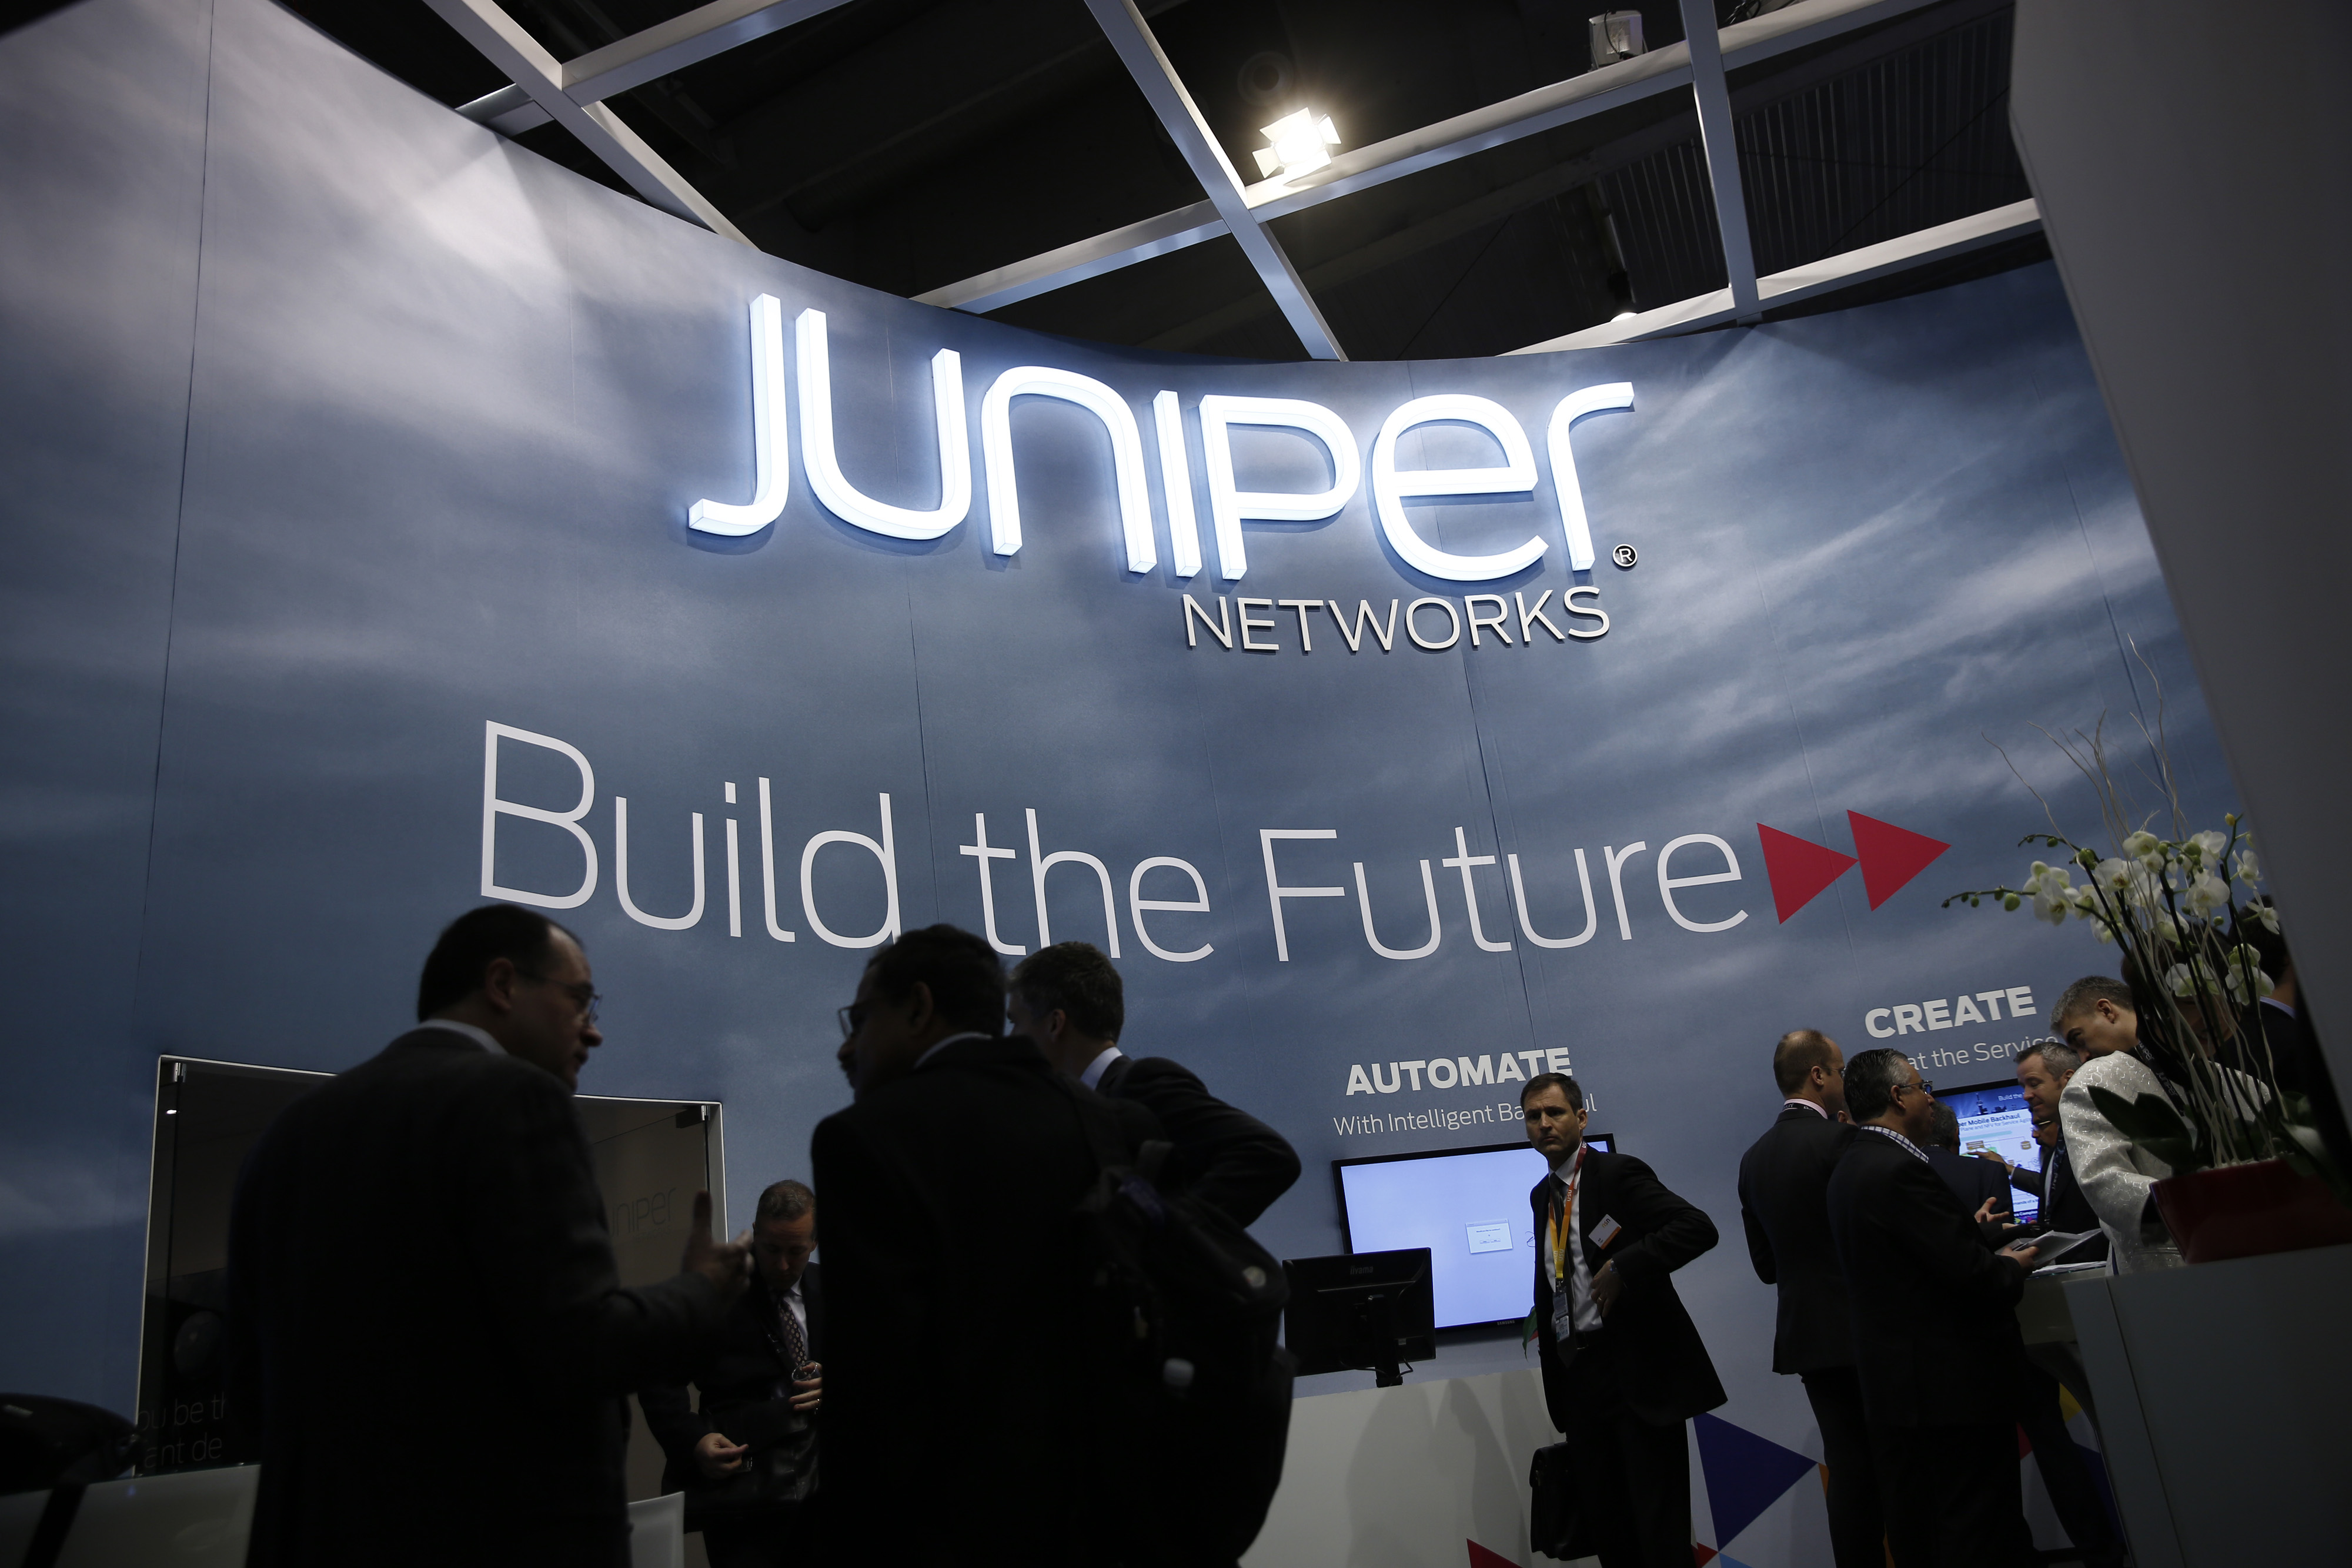 Opening Day Of Mobile World Congress 2014